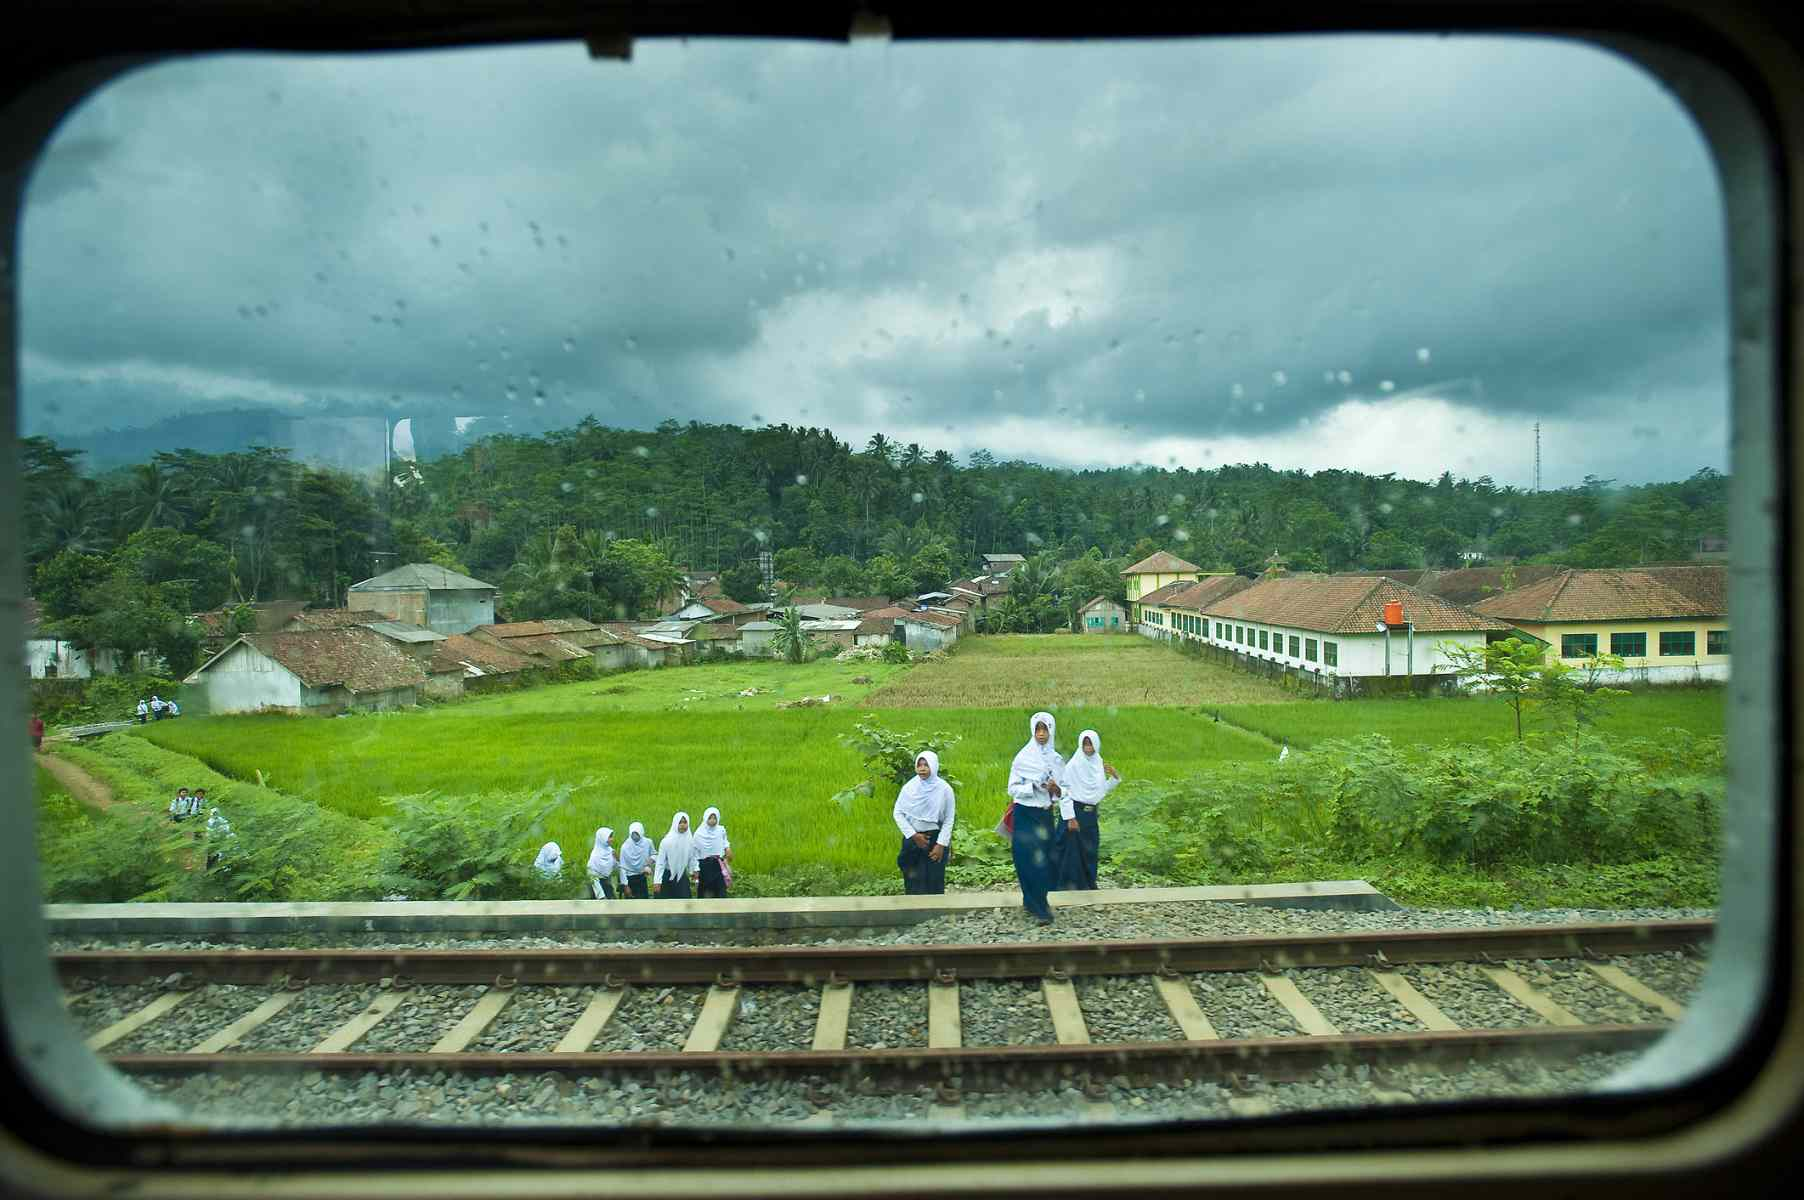 View from Indonesia train window